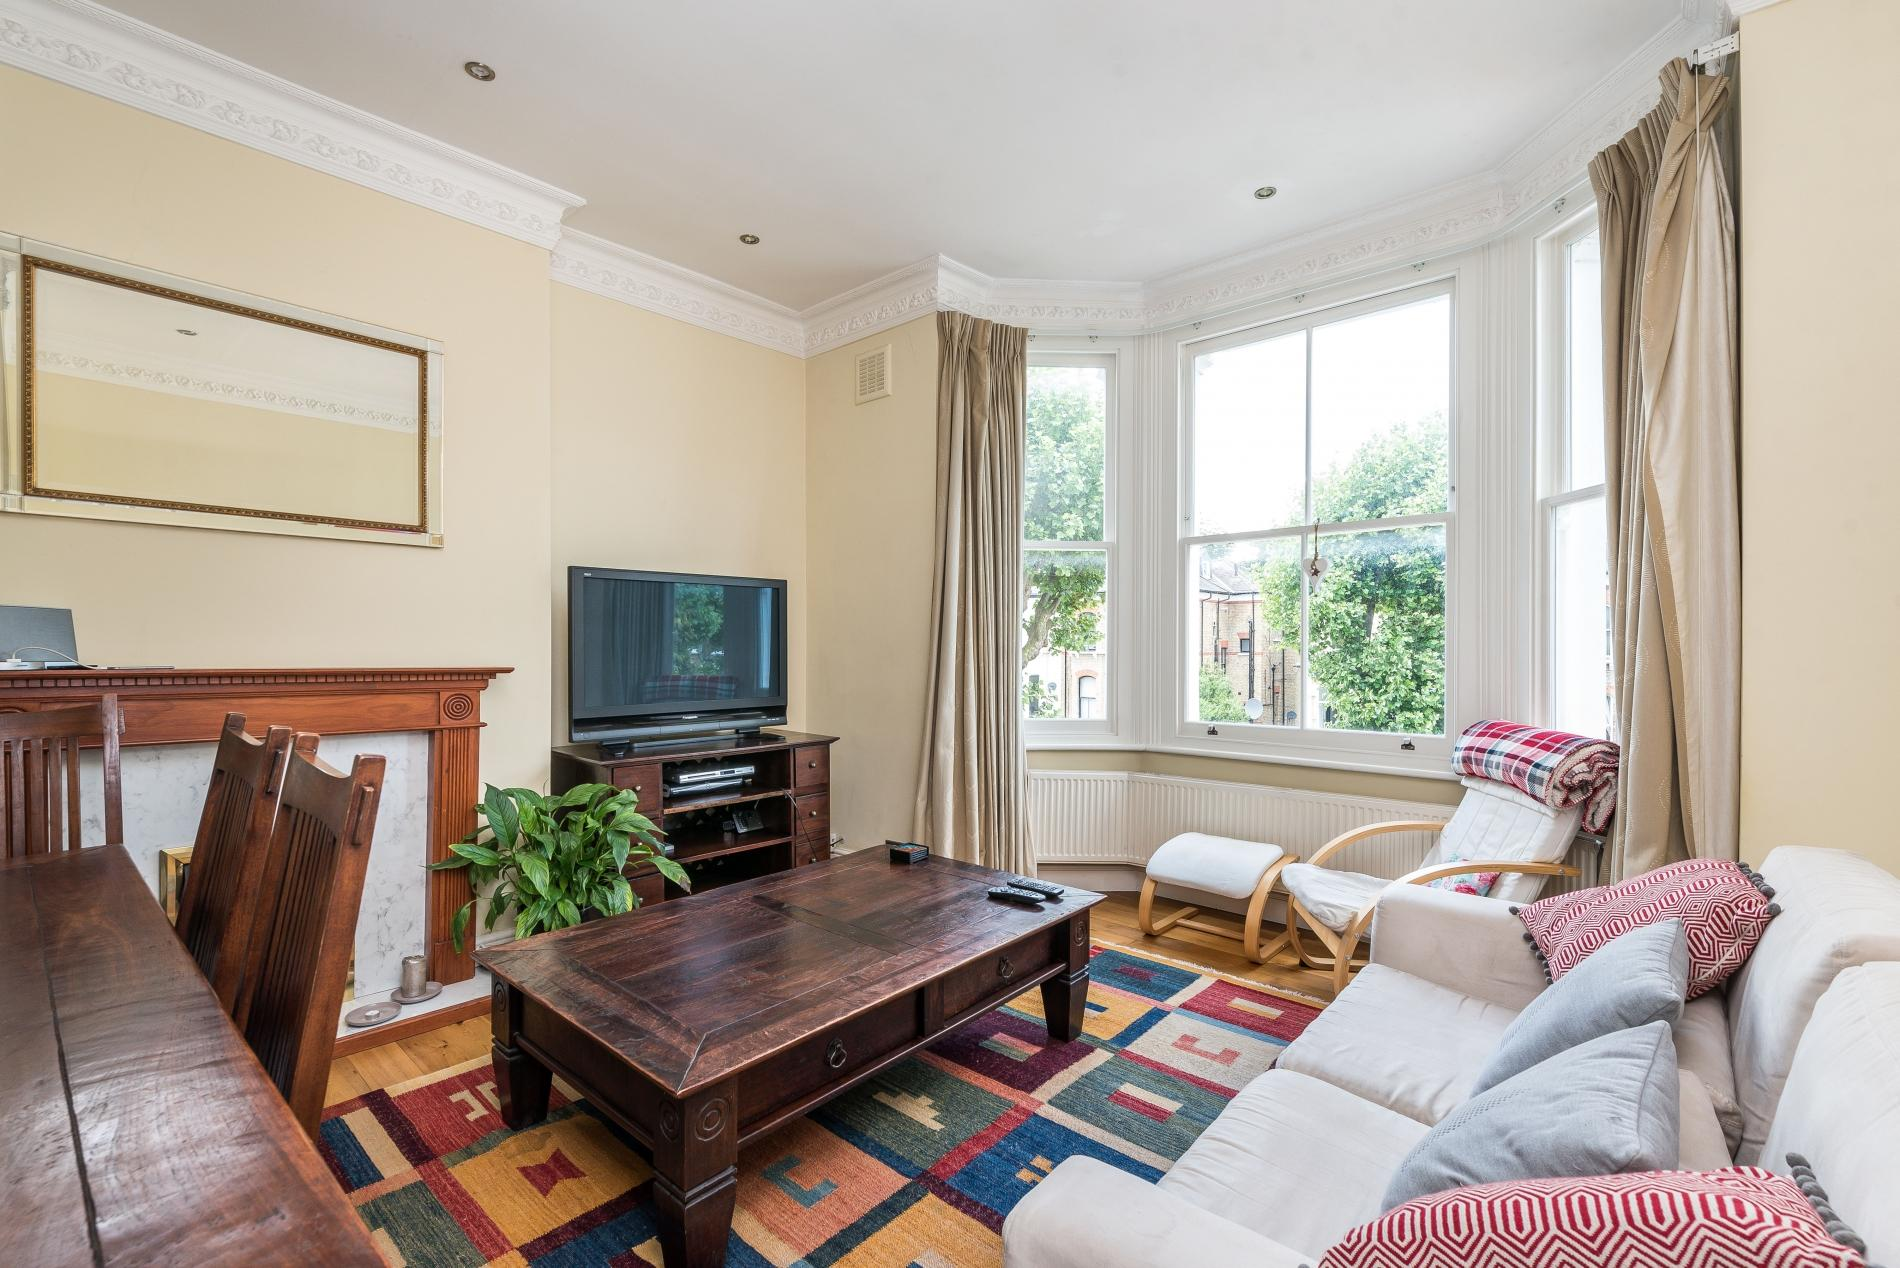 Two bedroom home London - living area - widescreen TV - wooden furniture